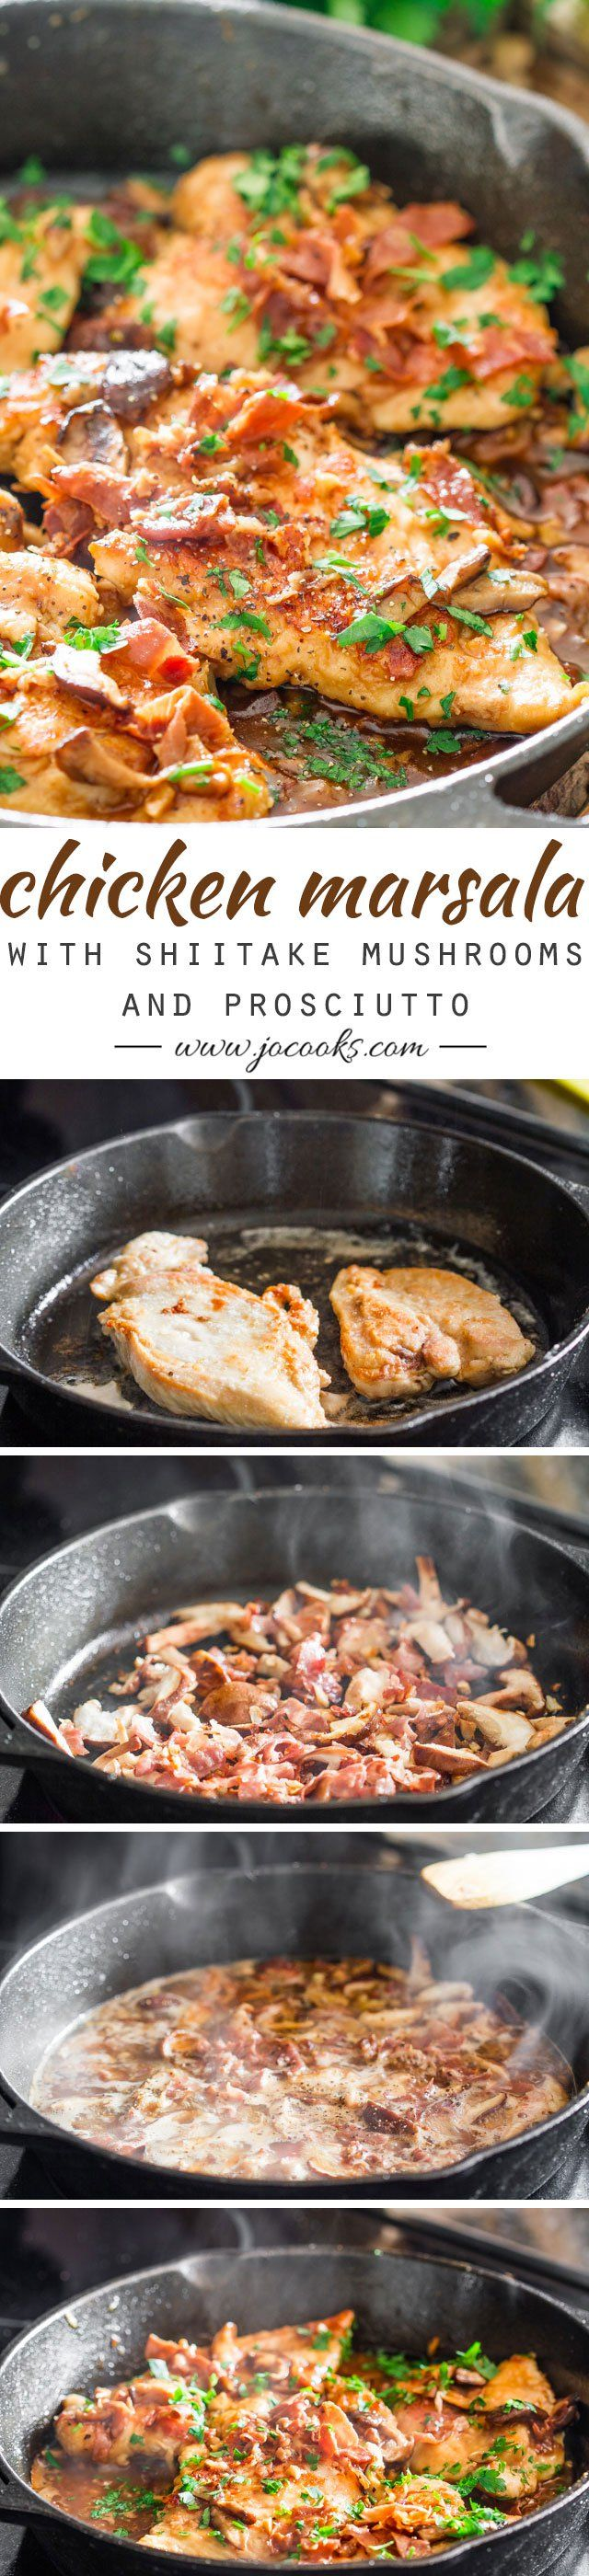 Chicken Marsala with Shiitake Mushrooms and Prosciutto - an Italian classic that's a quick and easy family favorite dinner recipe. Delizioso!